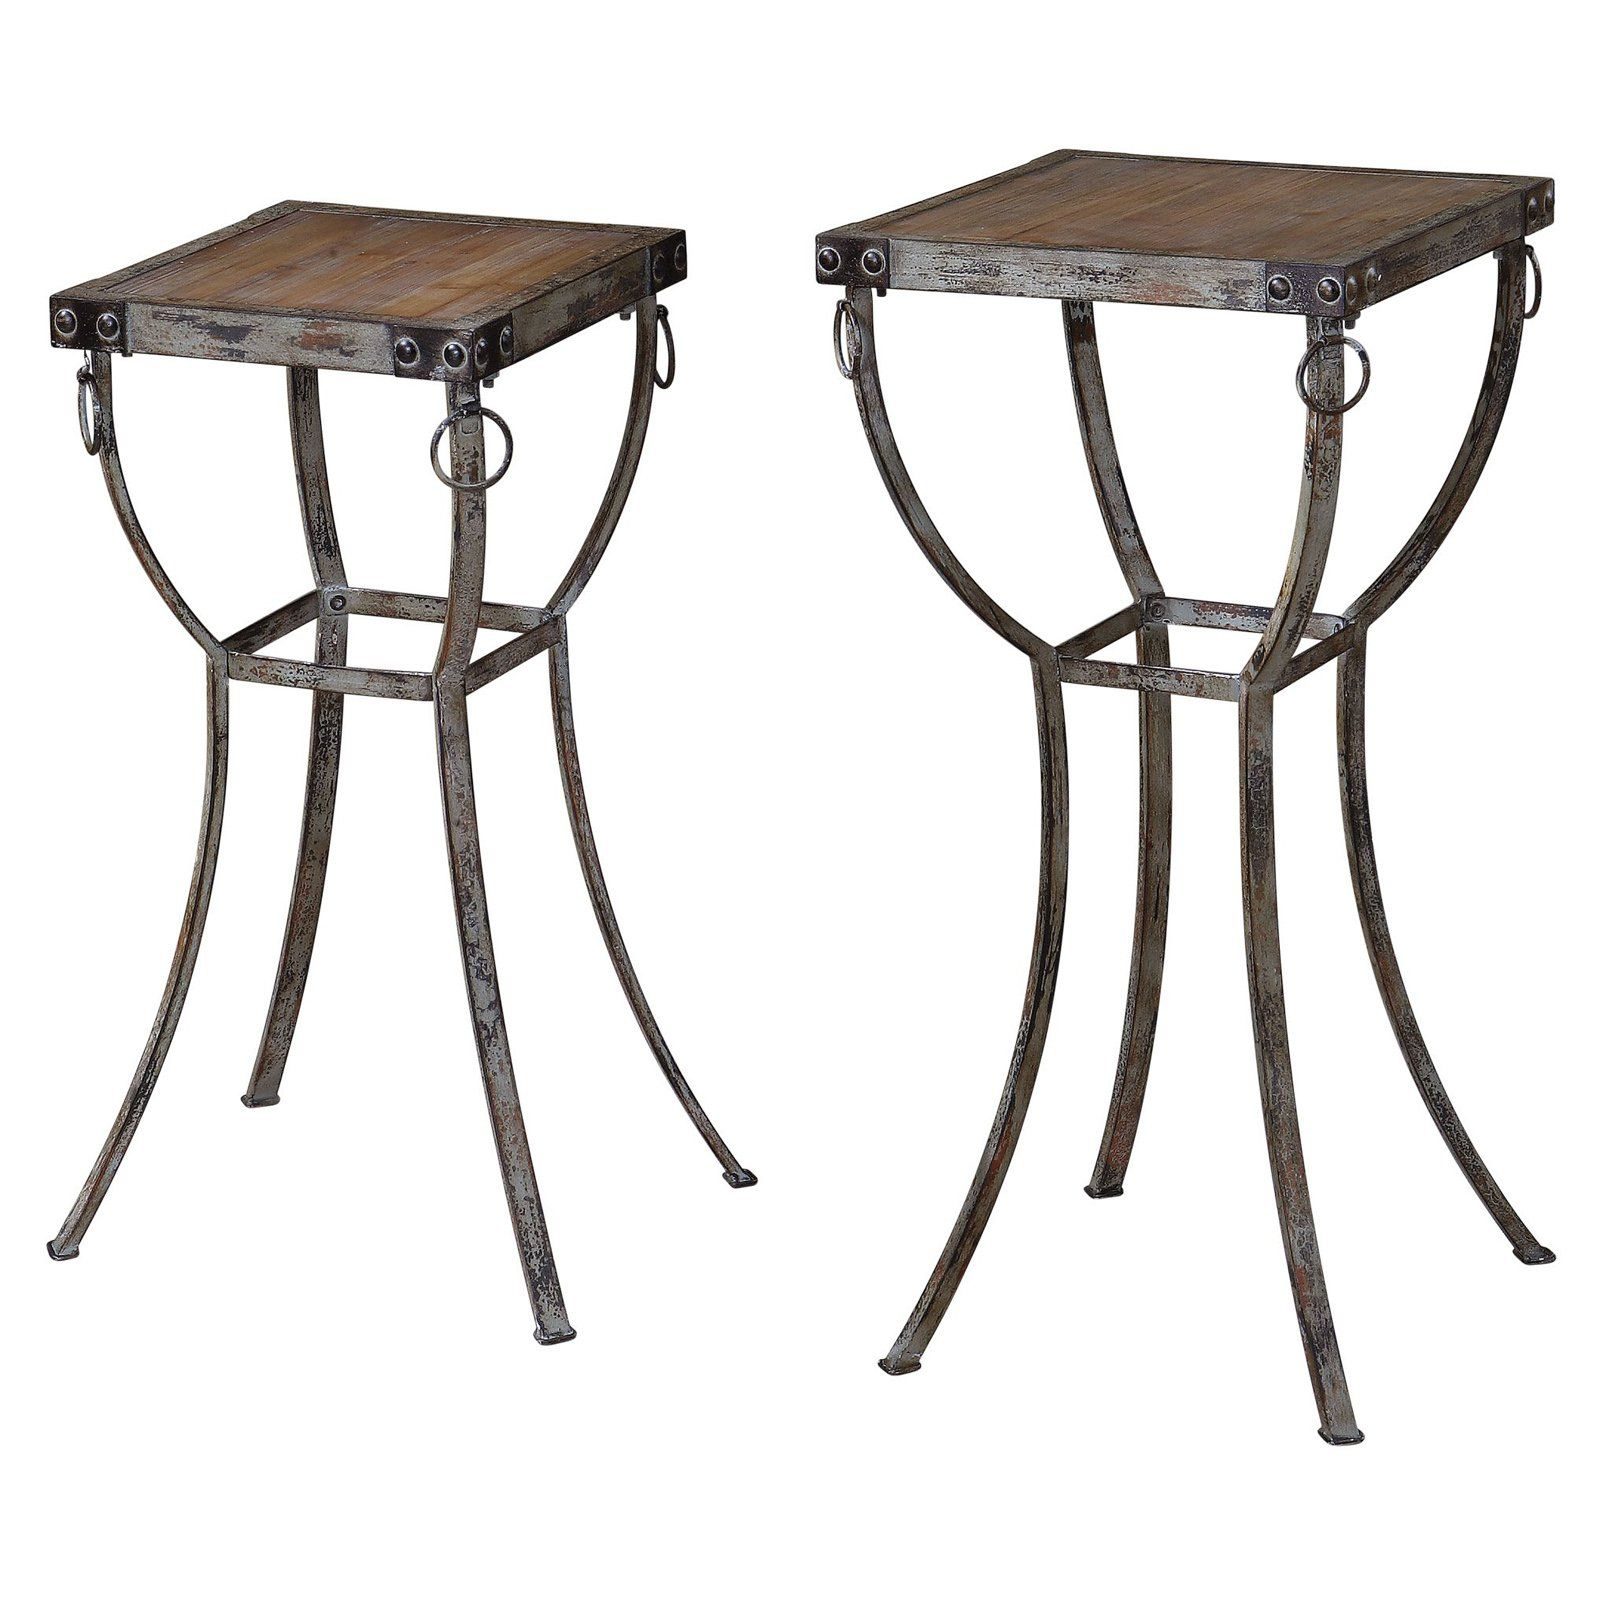 uttermost hewson plant stands set bring old world rubati accent table aesthetics your contemporary inch tablecloth drink ikea storage bags market umbrella stand target sideboard